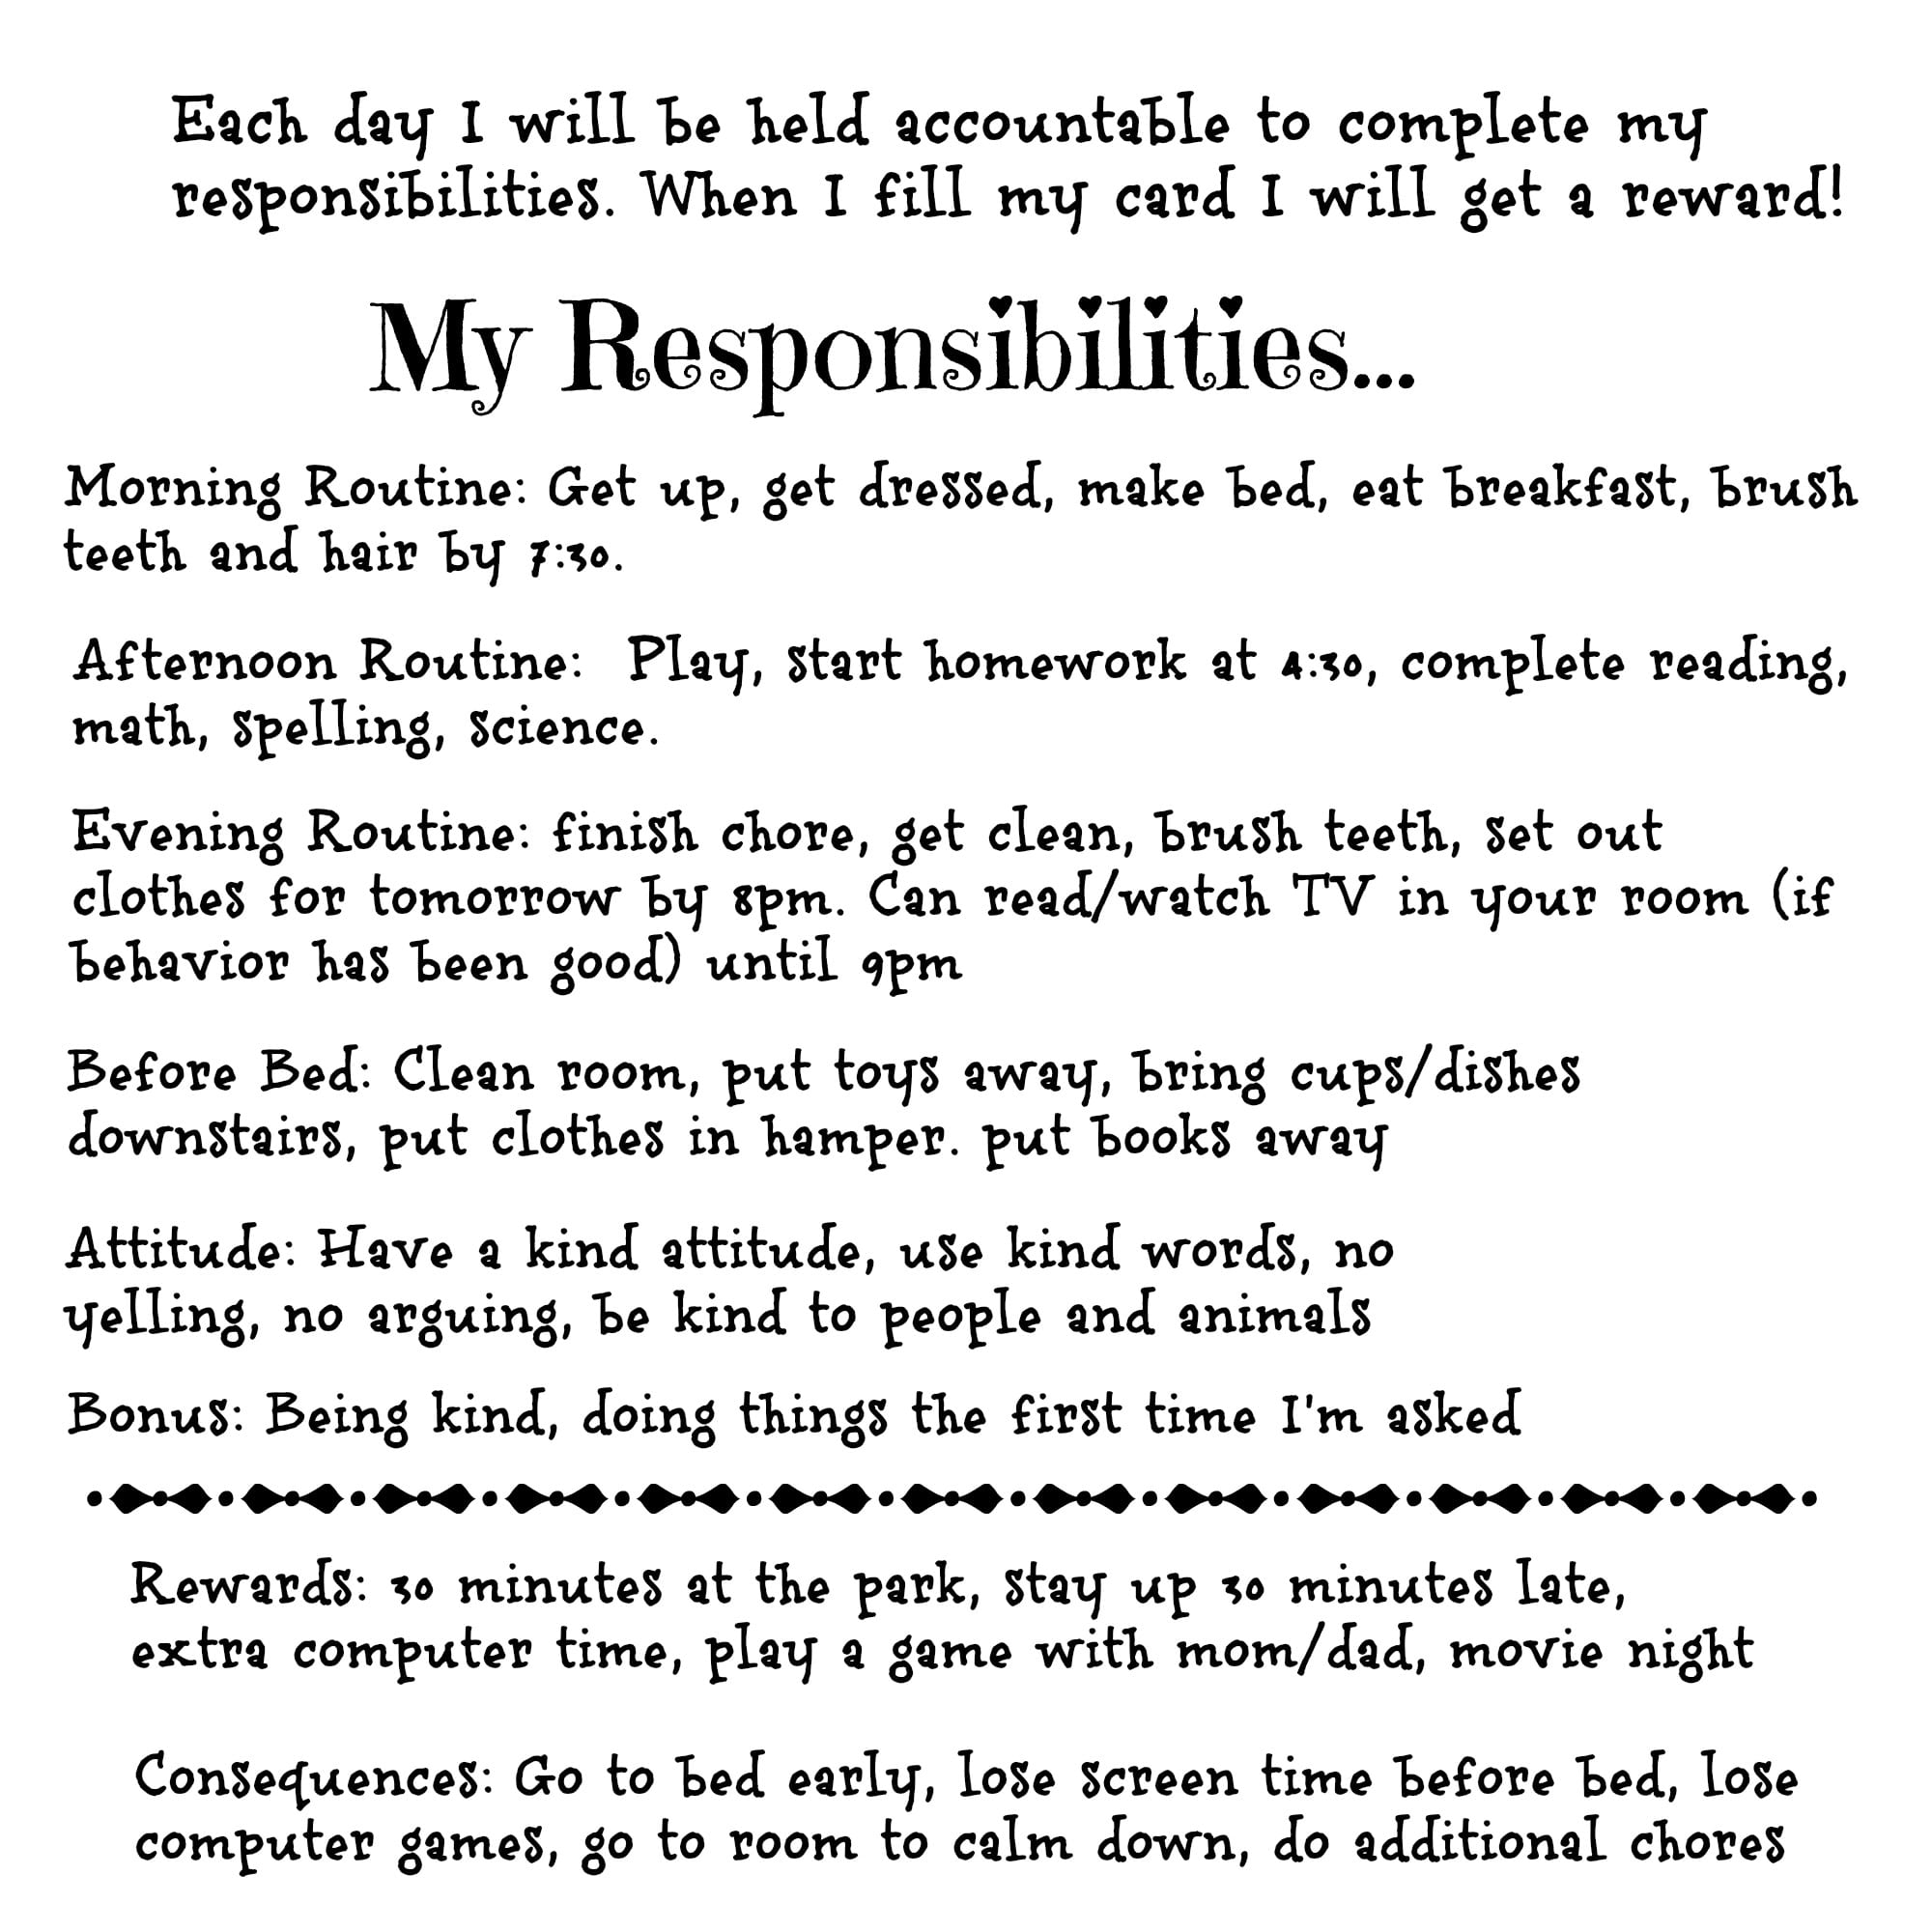 accountability responsibility and reasonable expectations of a relationship